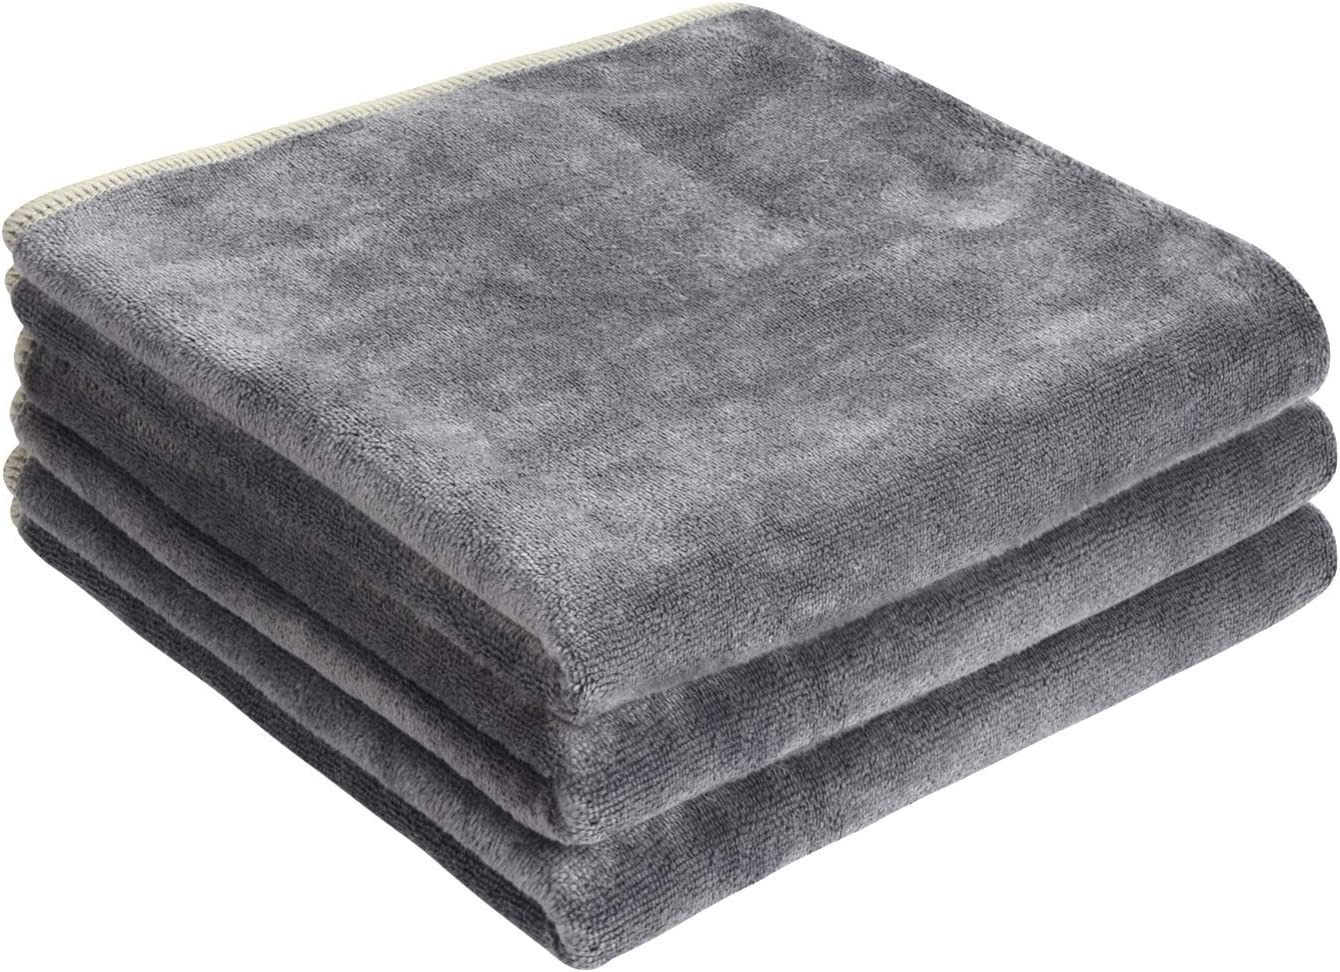 SINLAND Multi-Purpose Microfiber Fast Drying Travel Gym Towels 16Inch x 32Inch 3 Pack Grey